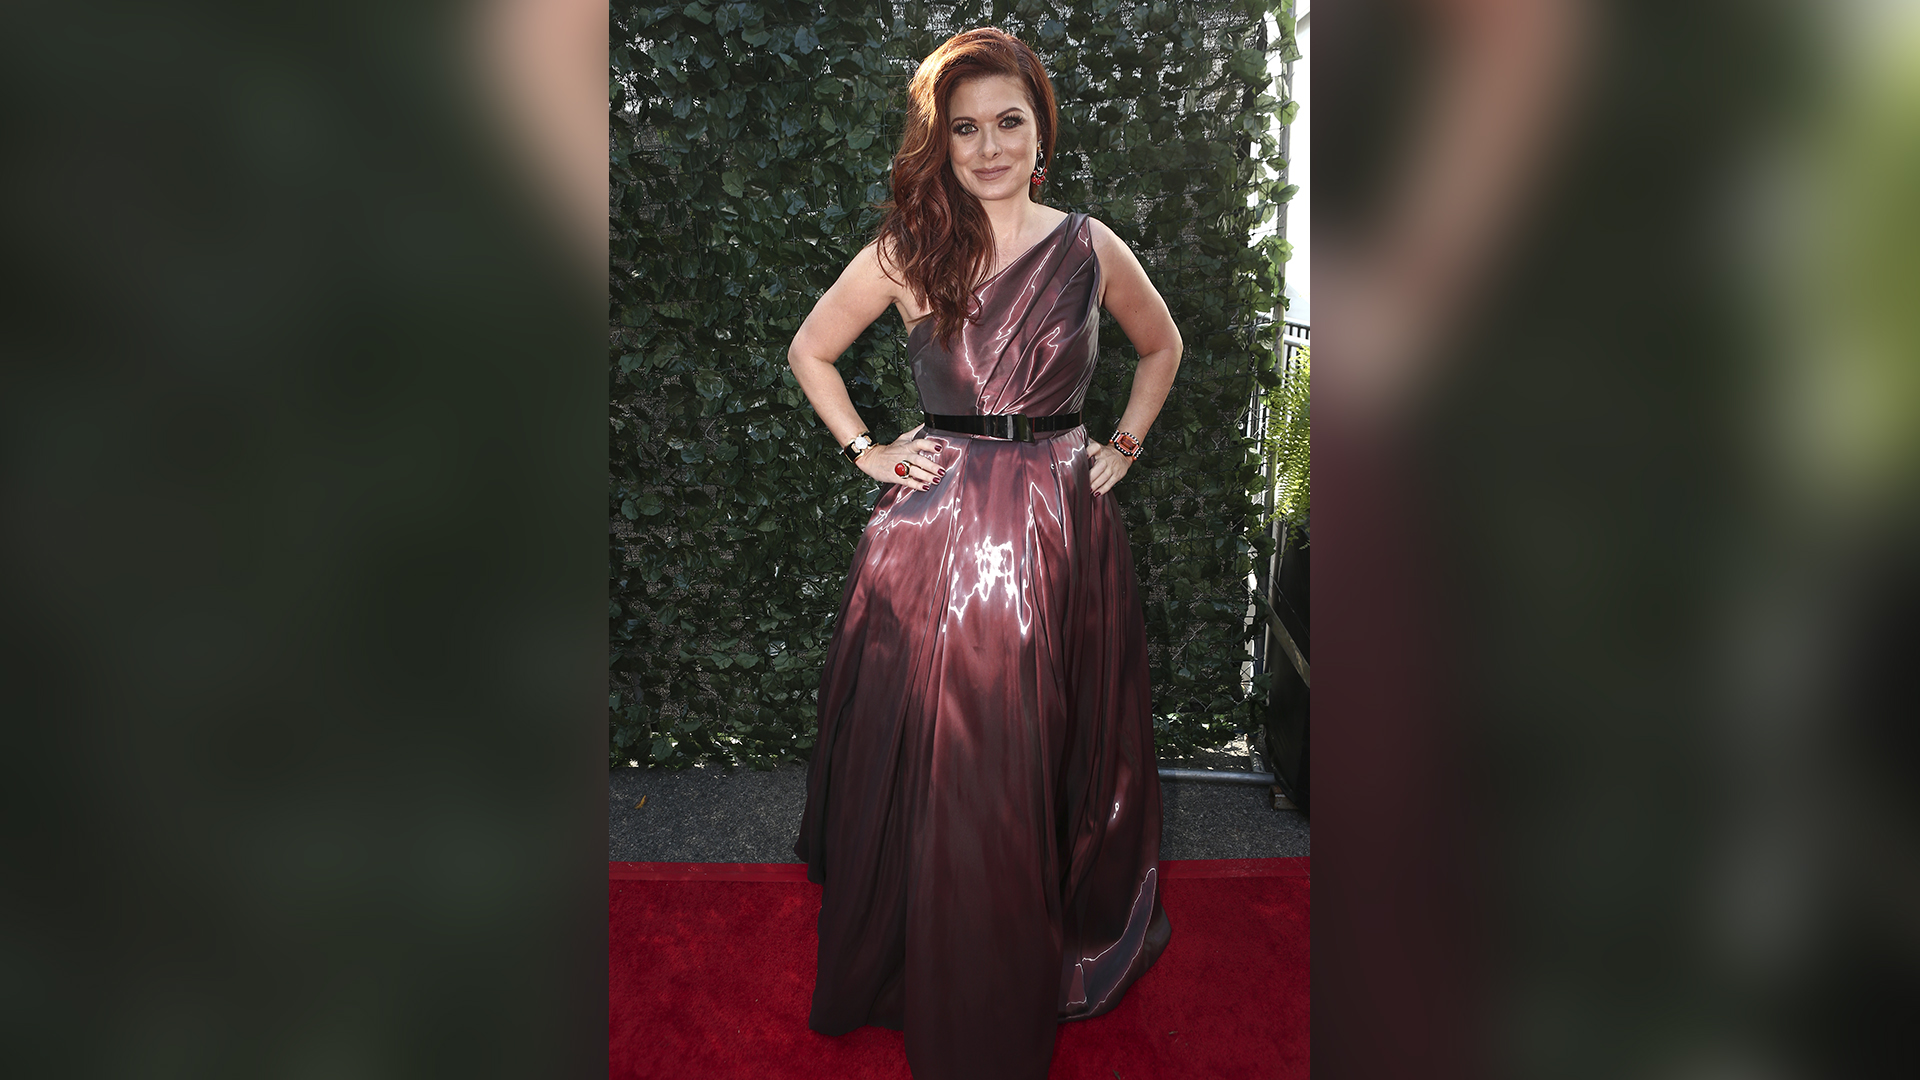 Debra Messing from Will & Grace